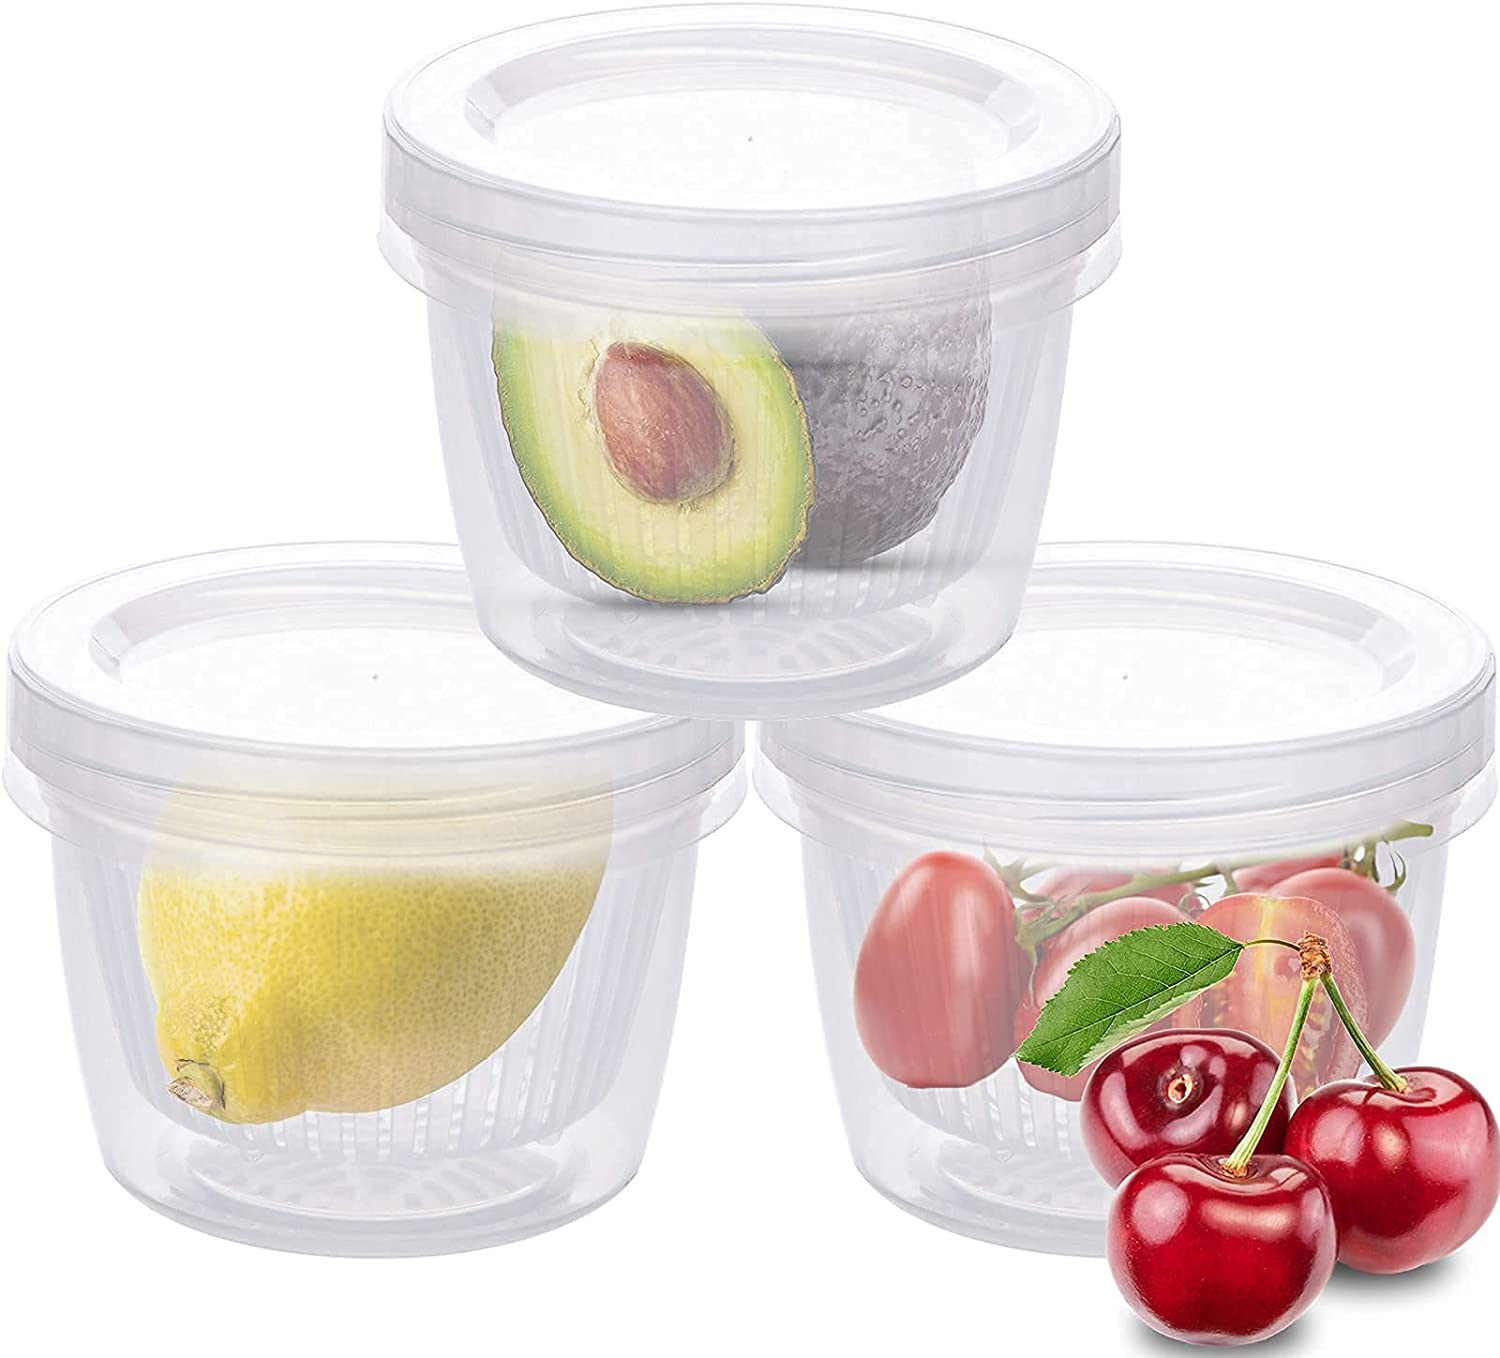 Food Fruit Vegetable Storage Container, (3-Pack) Avocado Lemon Tomato Chili Onion Keeper/Saver/Holder with Removable Drain Plate+Lids, Stackable Portable Freezer kitchen Organization Gadgets